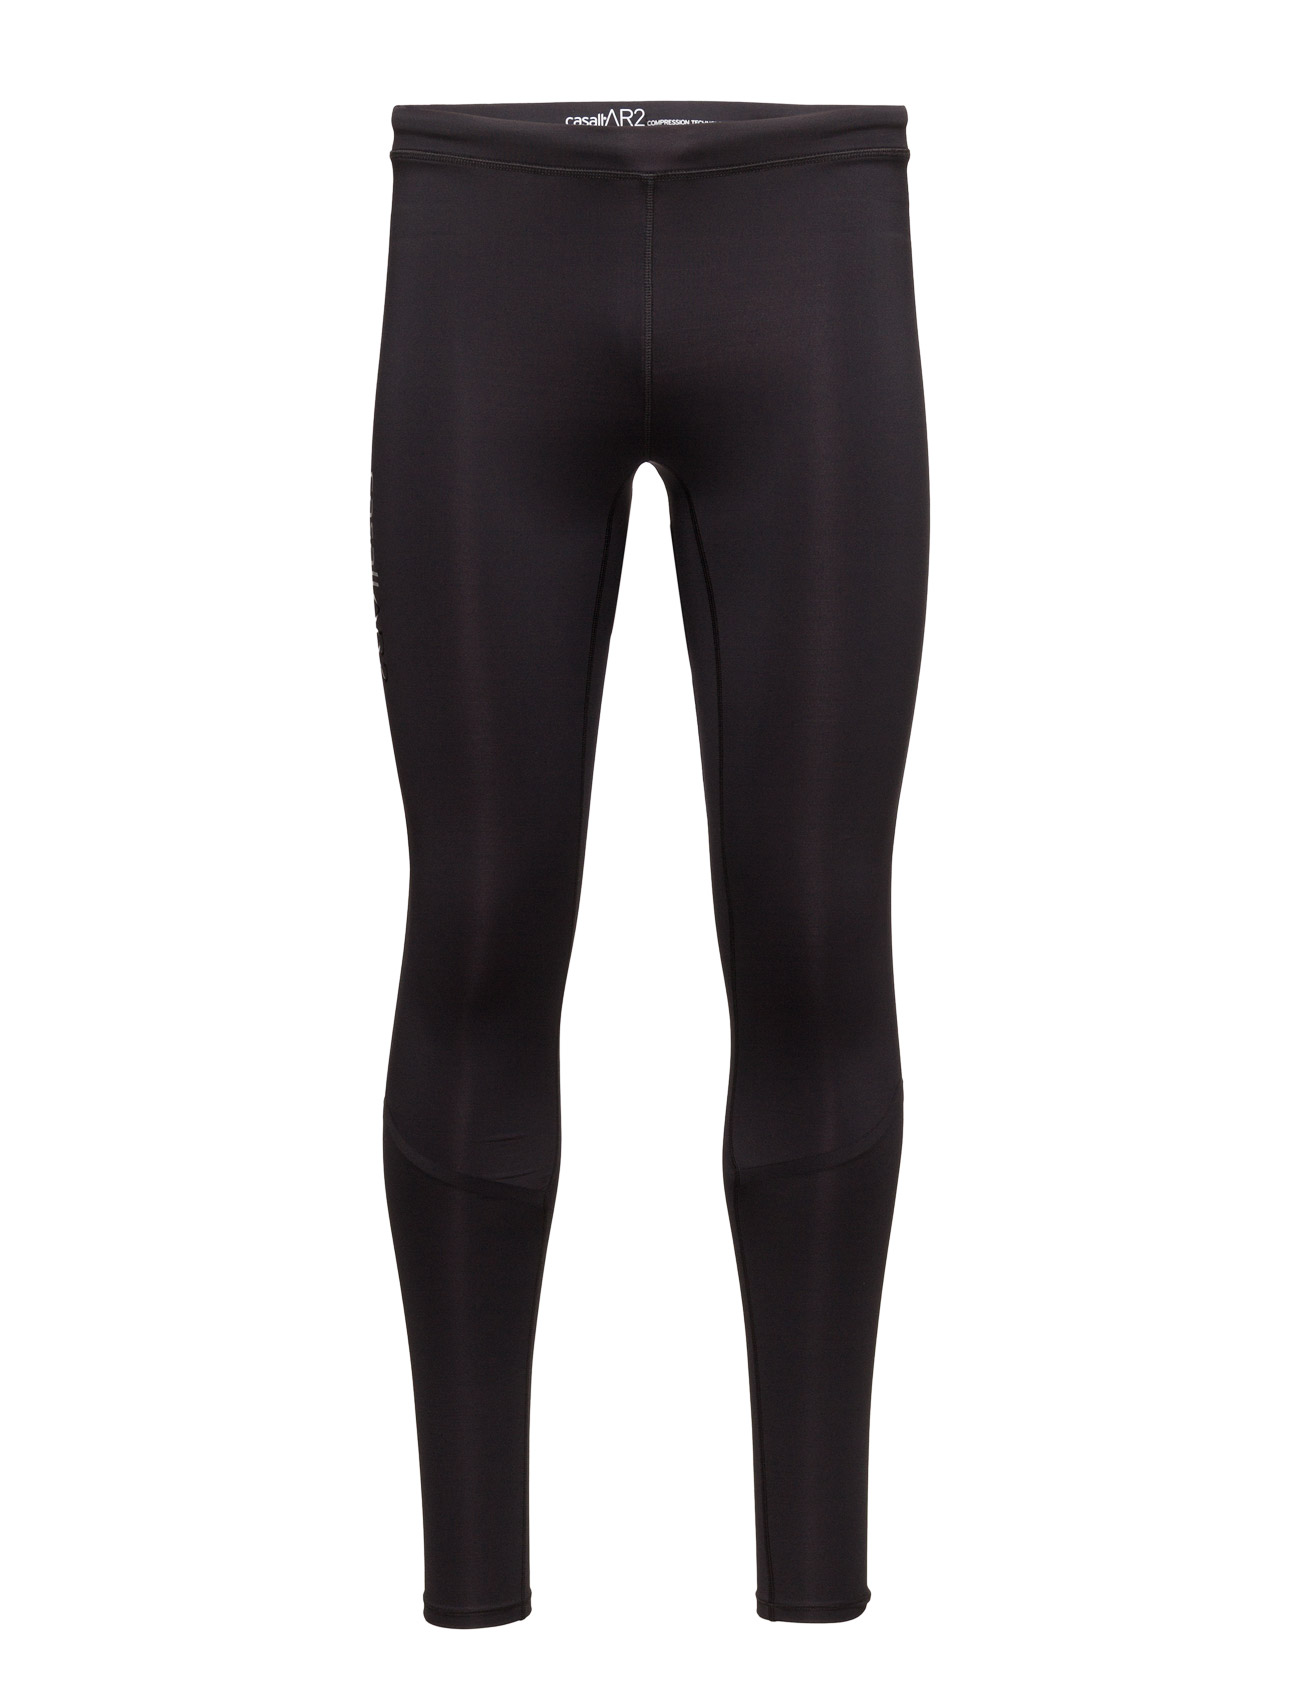 M Ar2 Compression Tights Casall Løbe tights til Mænd i Sort